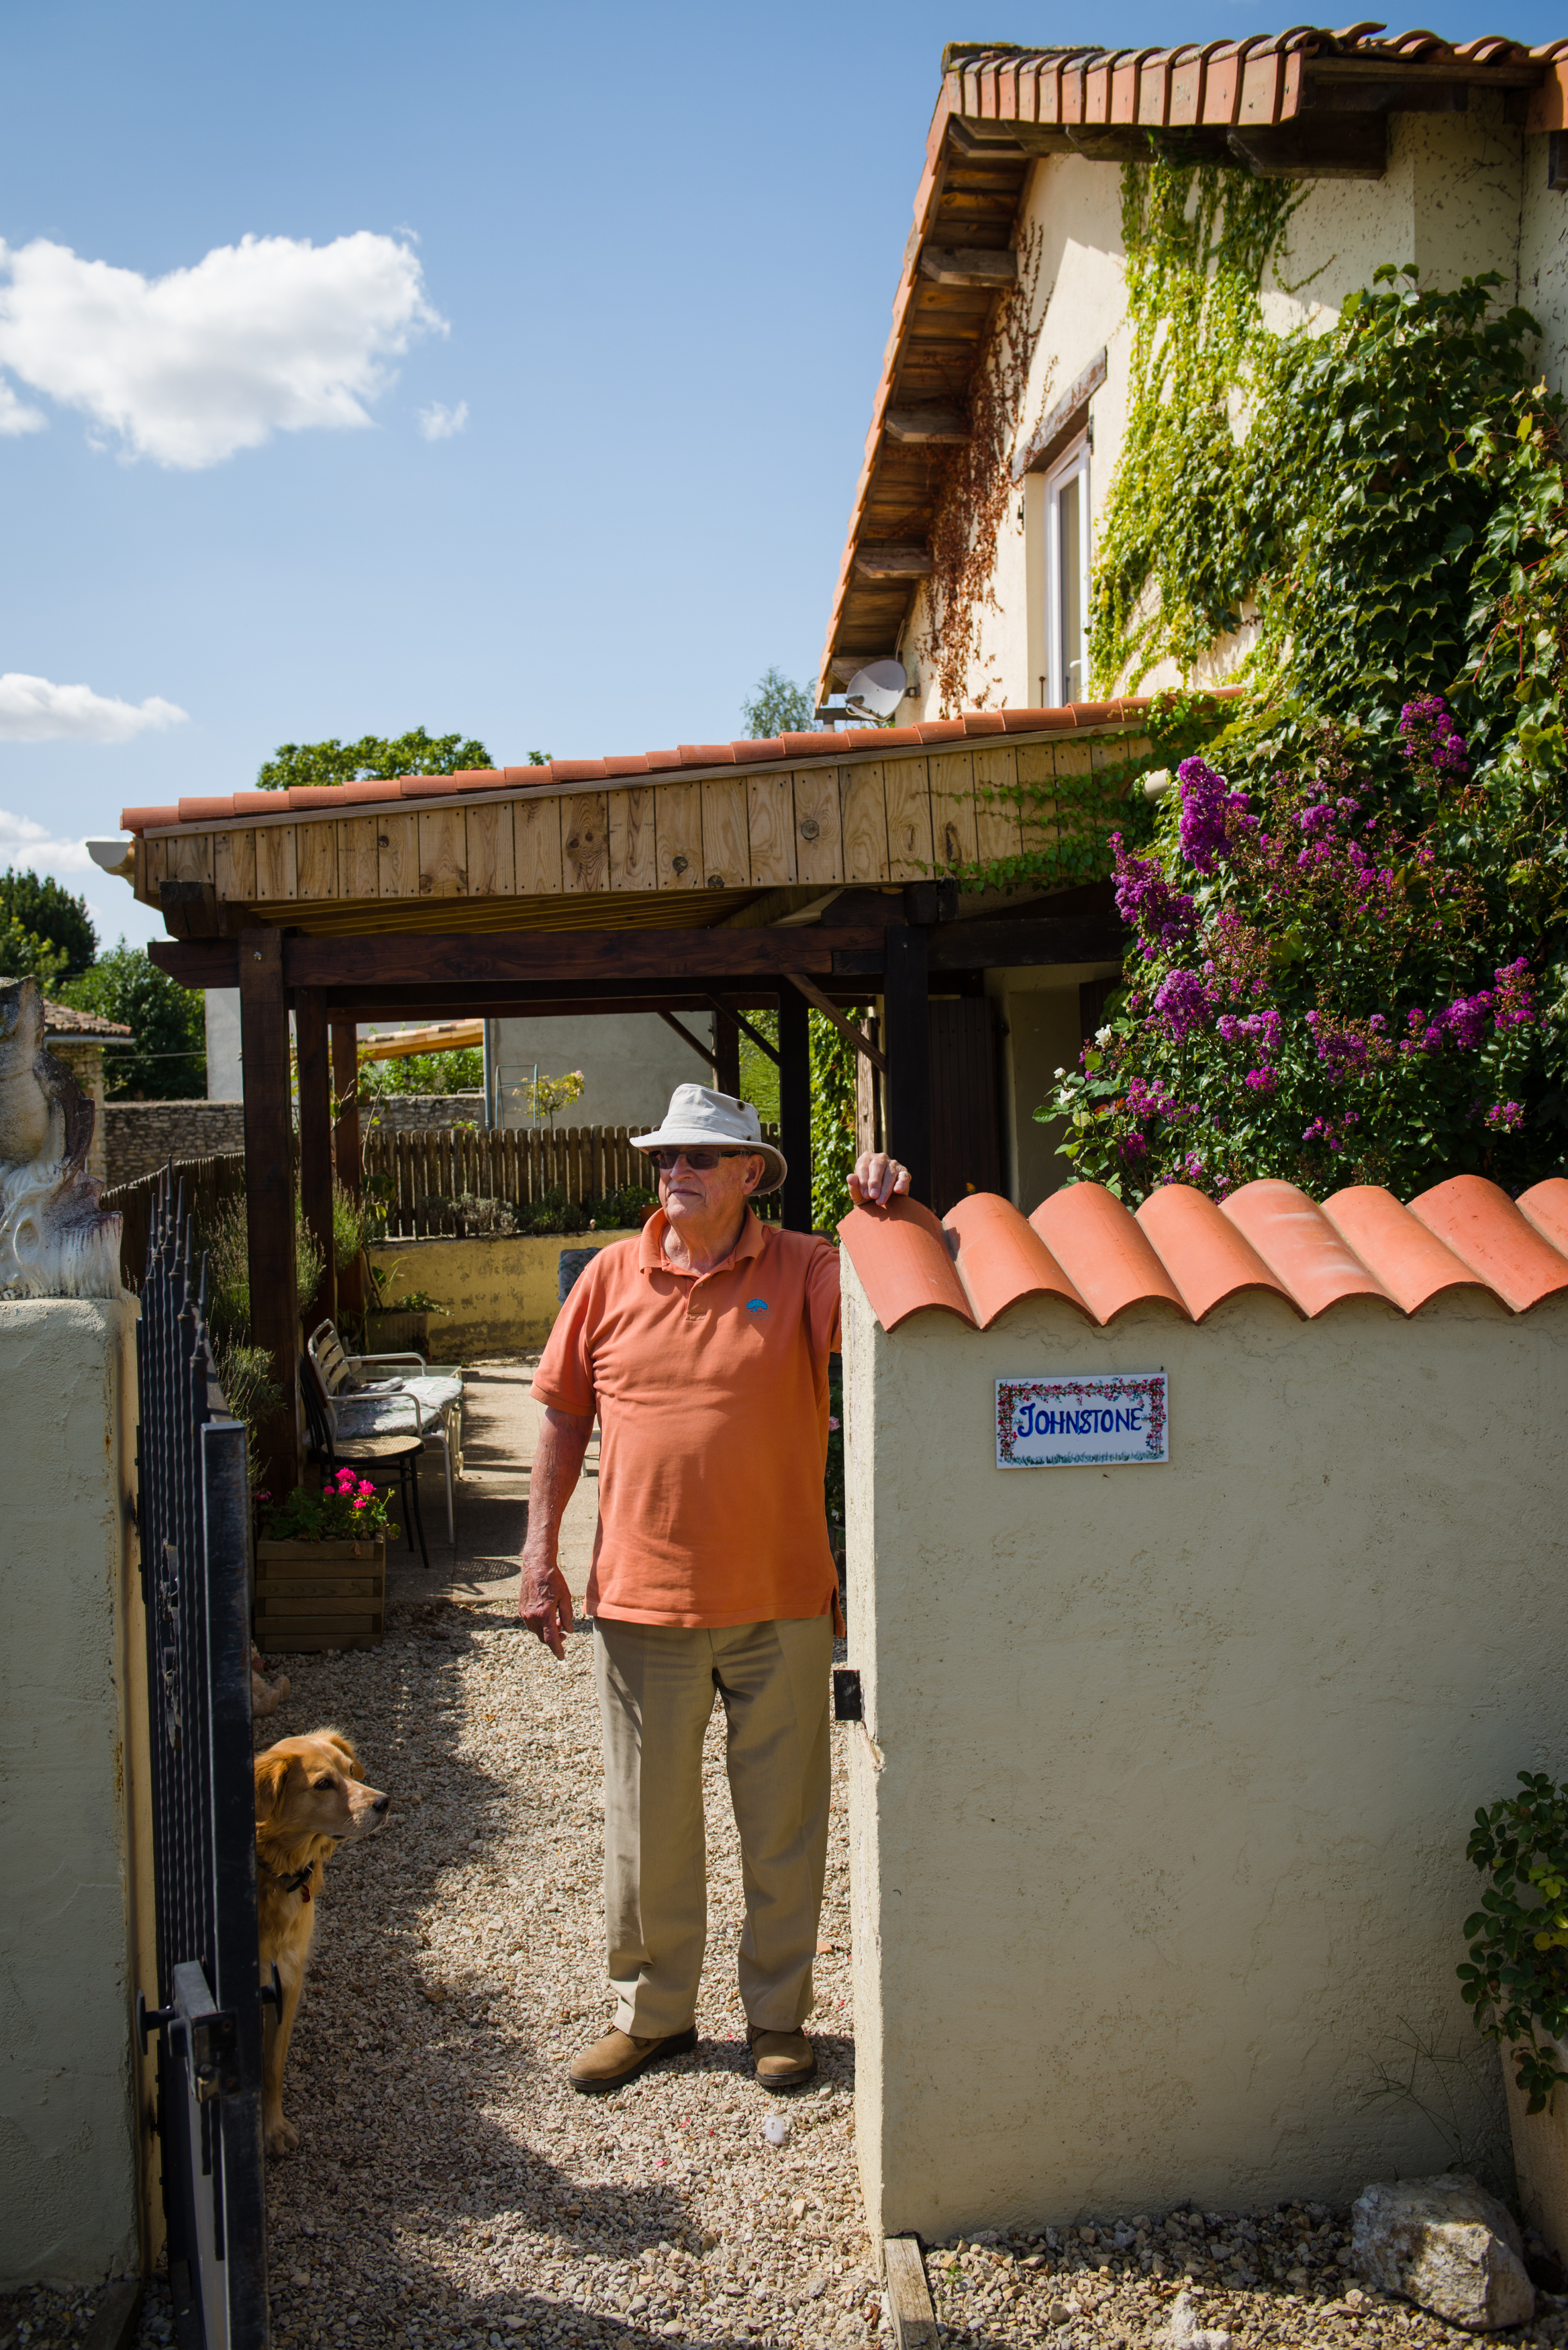 """Alasdair Johnson, 80, outside his home in Linaray, France. Johnson has lived in France for 14 years, his son was educated in France, his wife is active in the village and he is the founding member of a branch of the British Legion serving central France. """"Some people in the UK seem to think we are gin & tonic people all day and all night. We're not, we're busy, we work, we are part of the community here."""""""